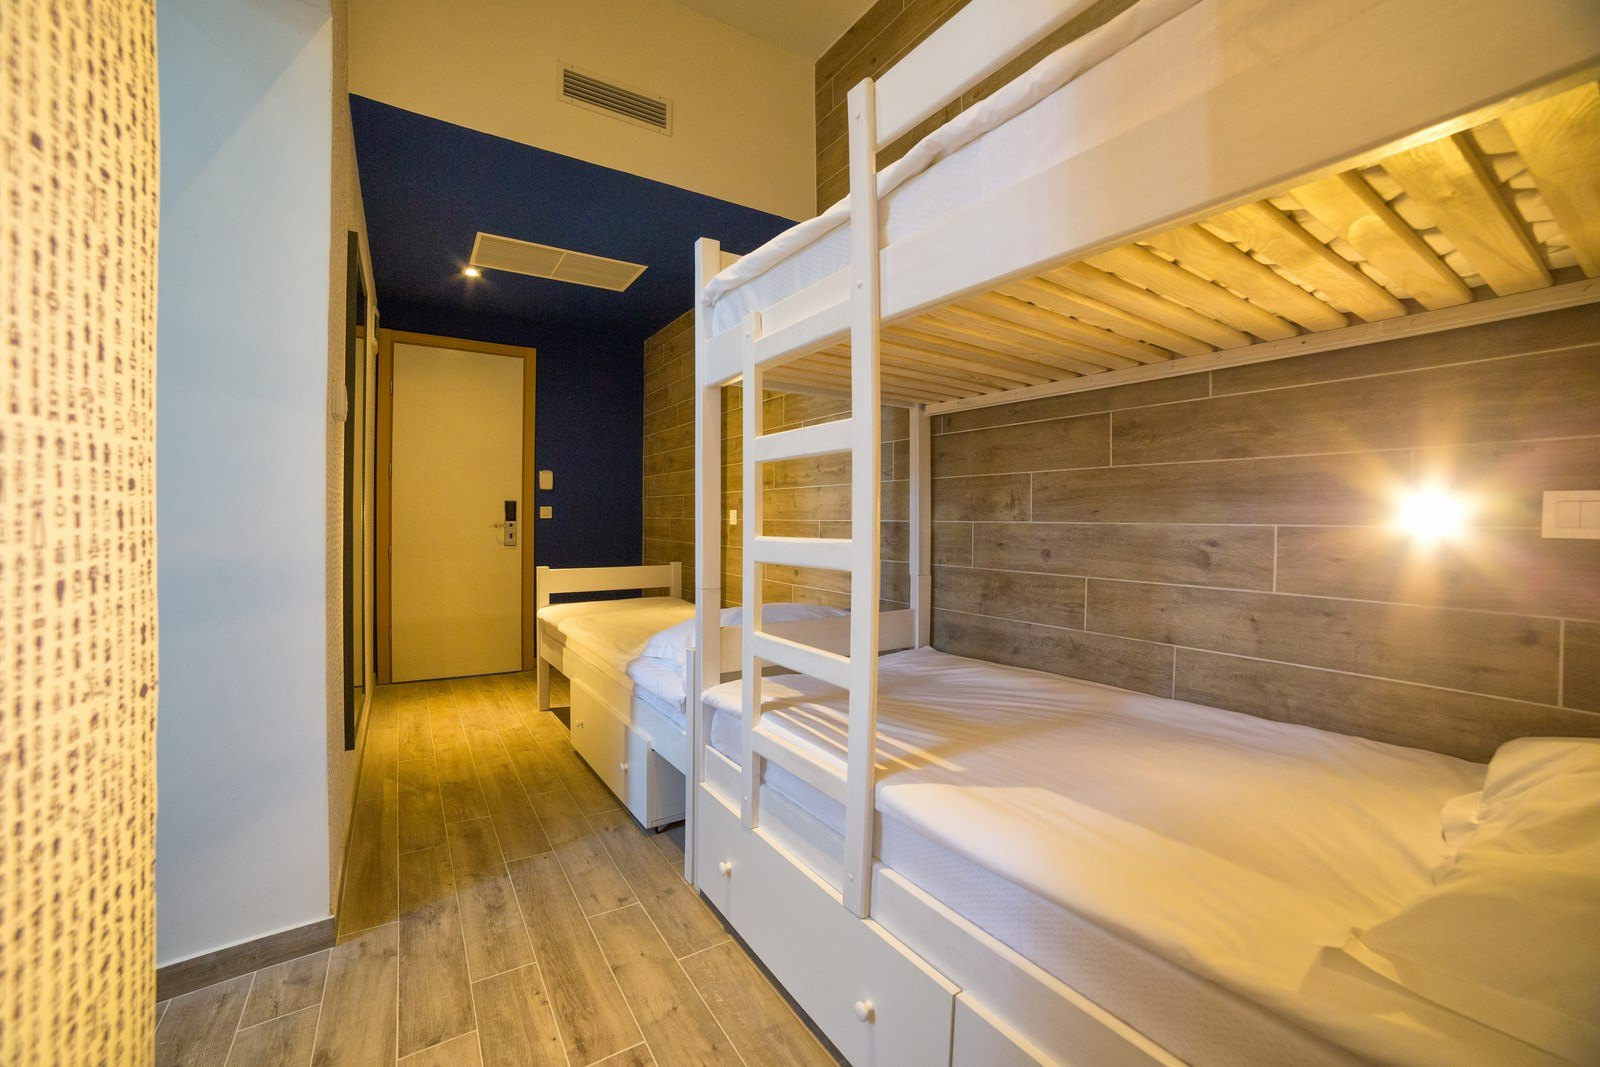 Triple Room with Bunk Beds 16 m² Courtyard/Garden View